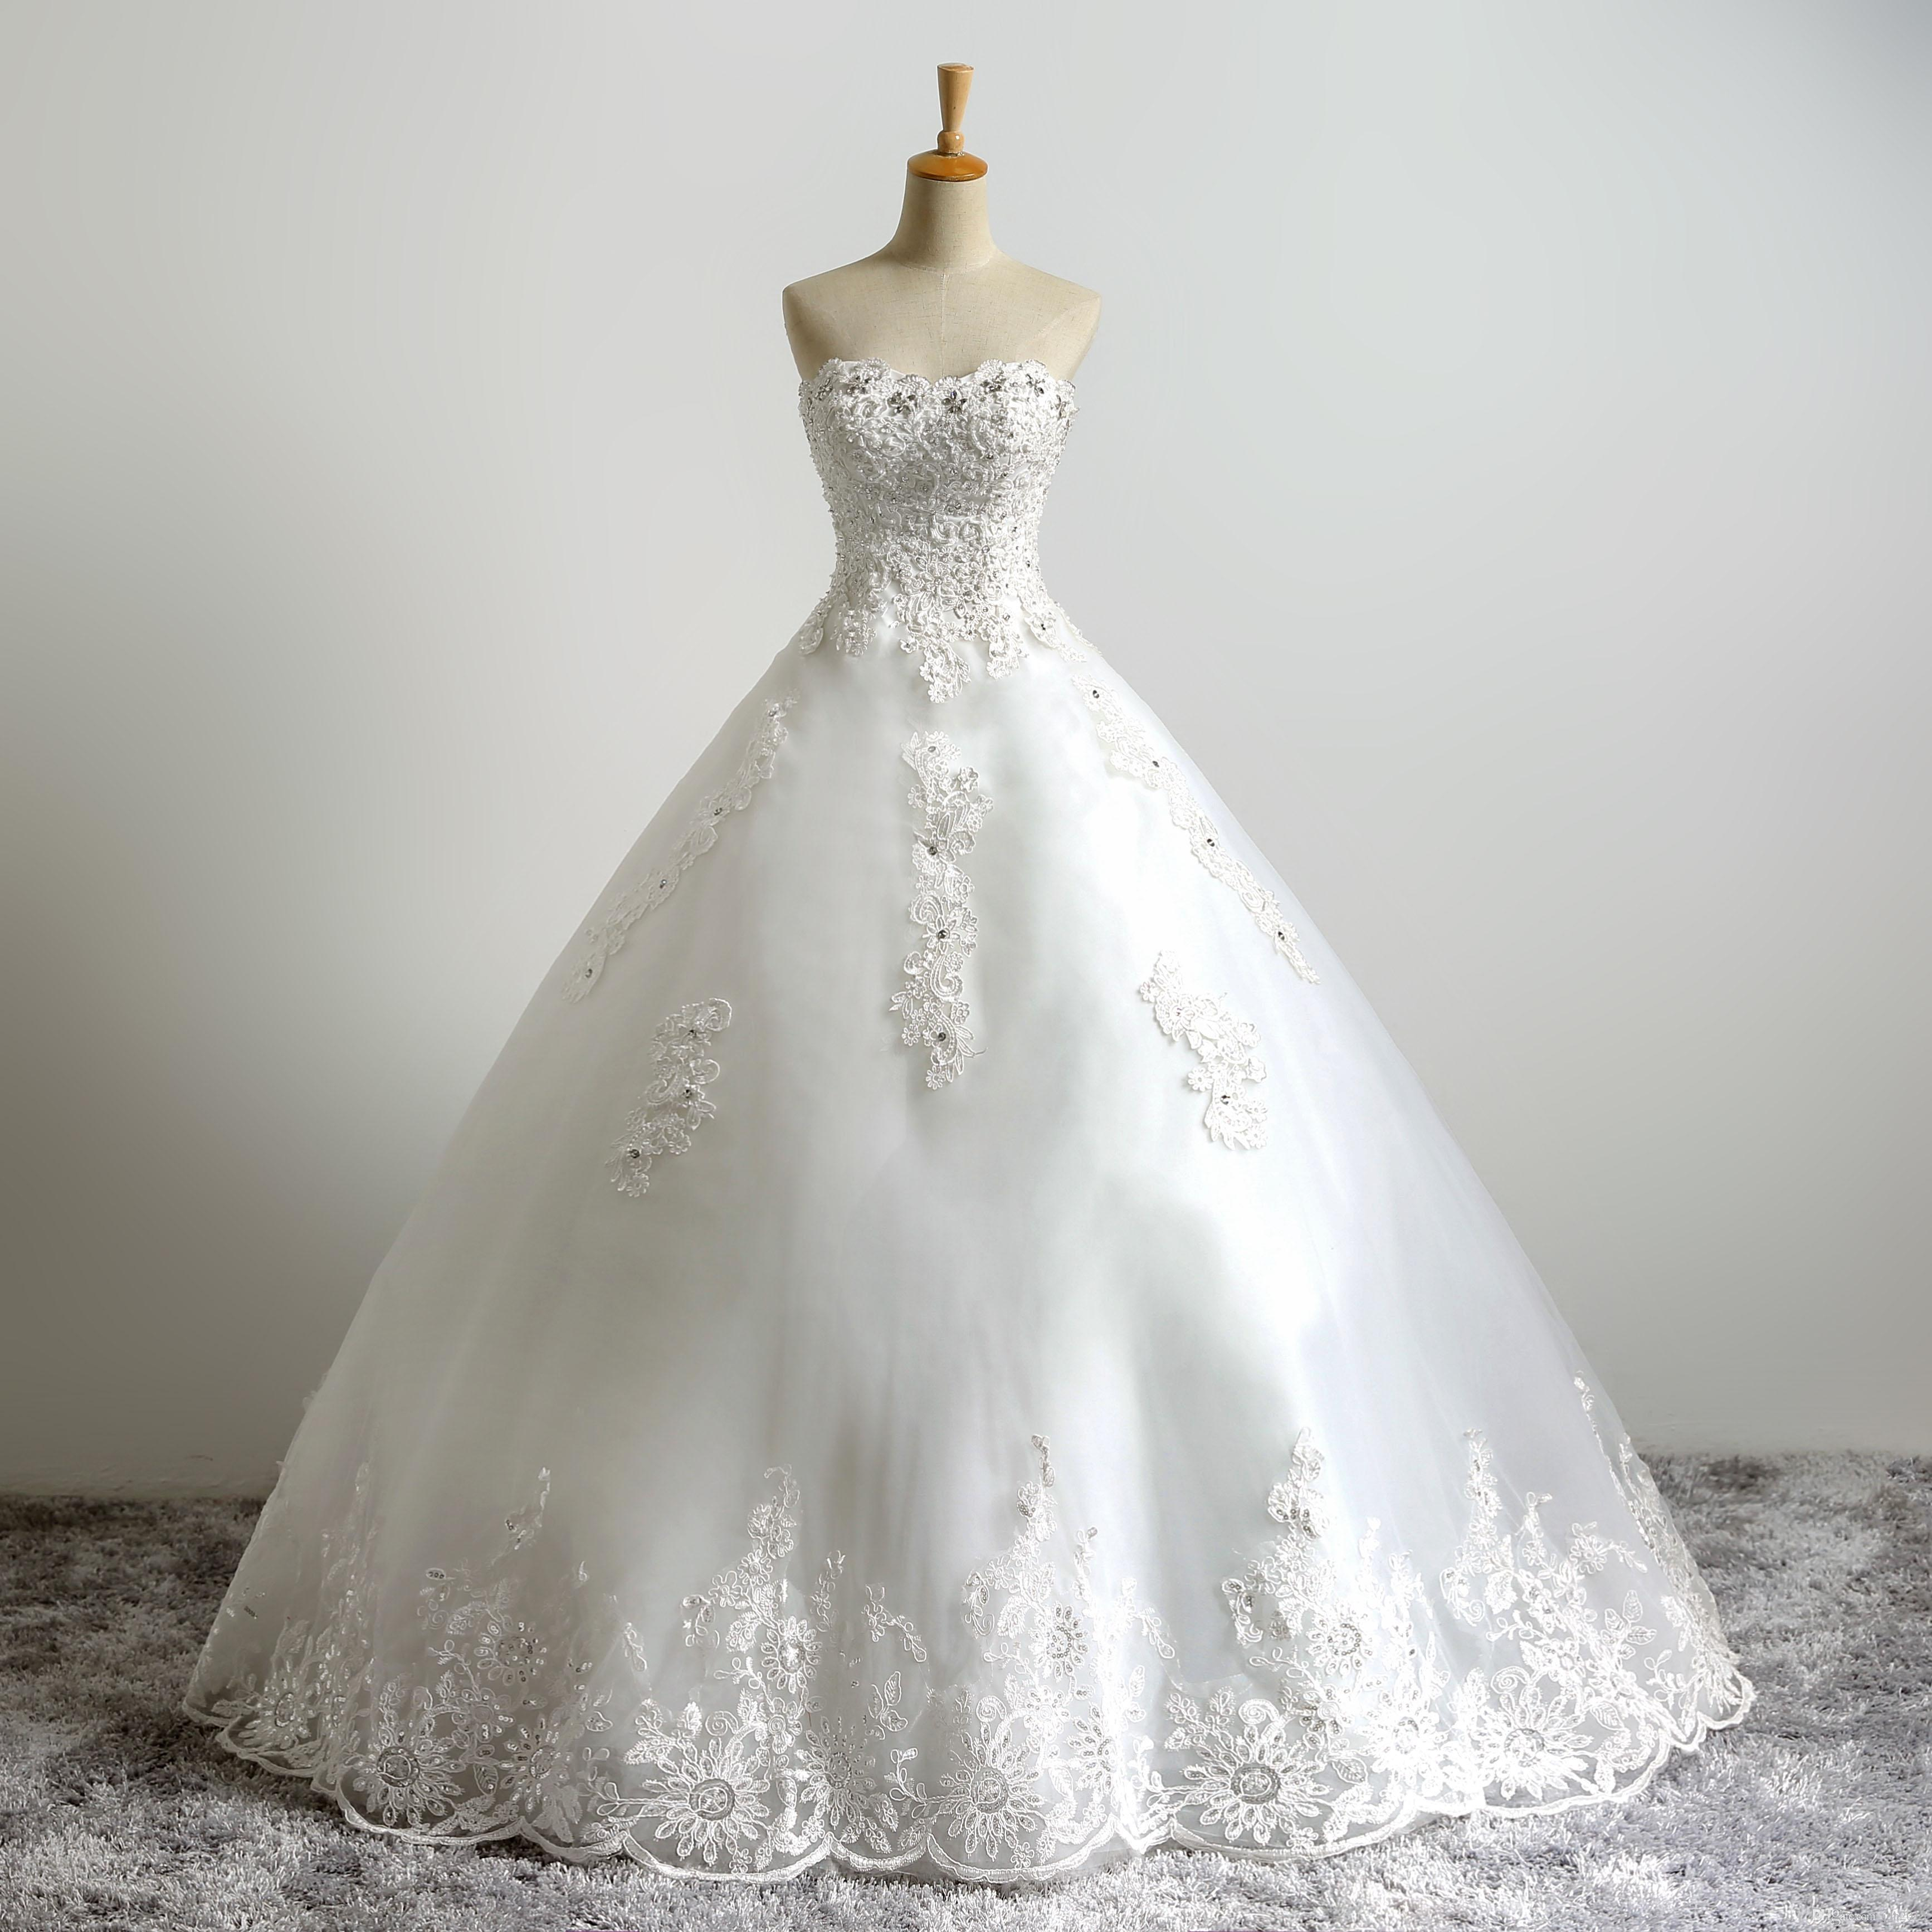 Sweetheart Strapless A-line Crystal Lace Applique Vestidos De Noiva Fancy Beaded Top Lace Bridal Ball Gowns Wedding Dress Ivory as Picture